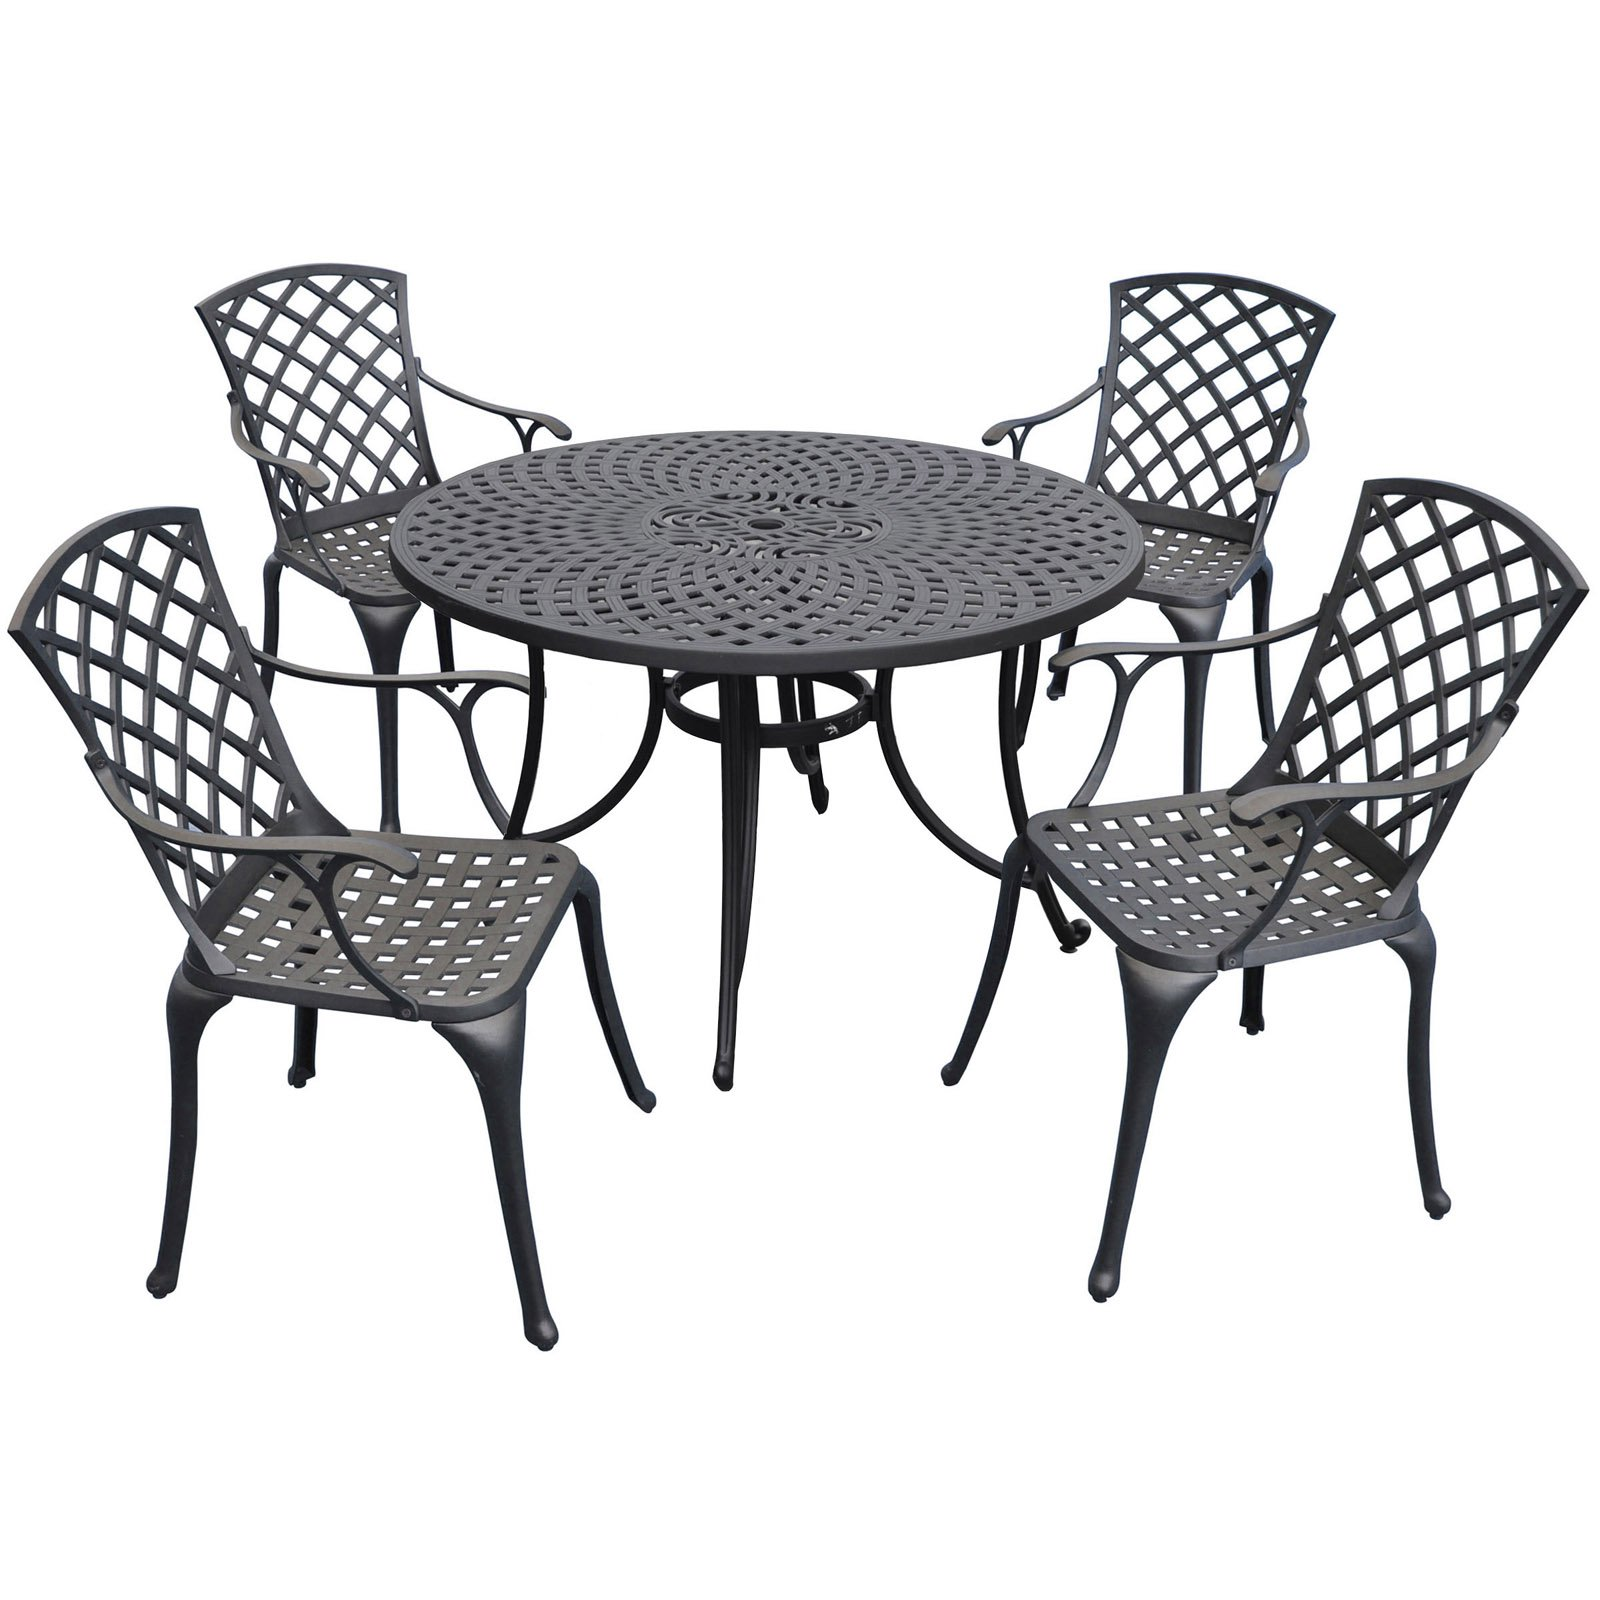 5 Piece Cast Aluminum Outdoor Dining Set With High Back Arm